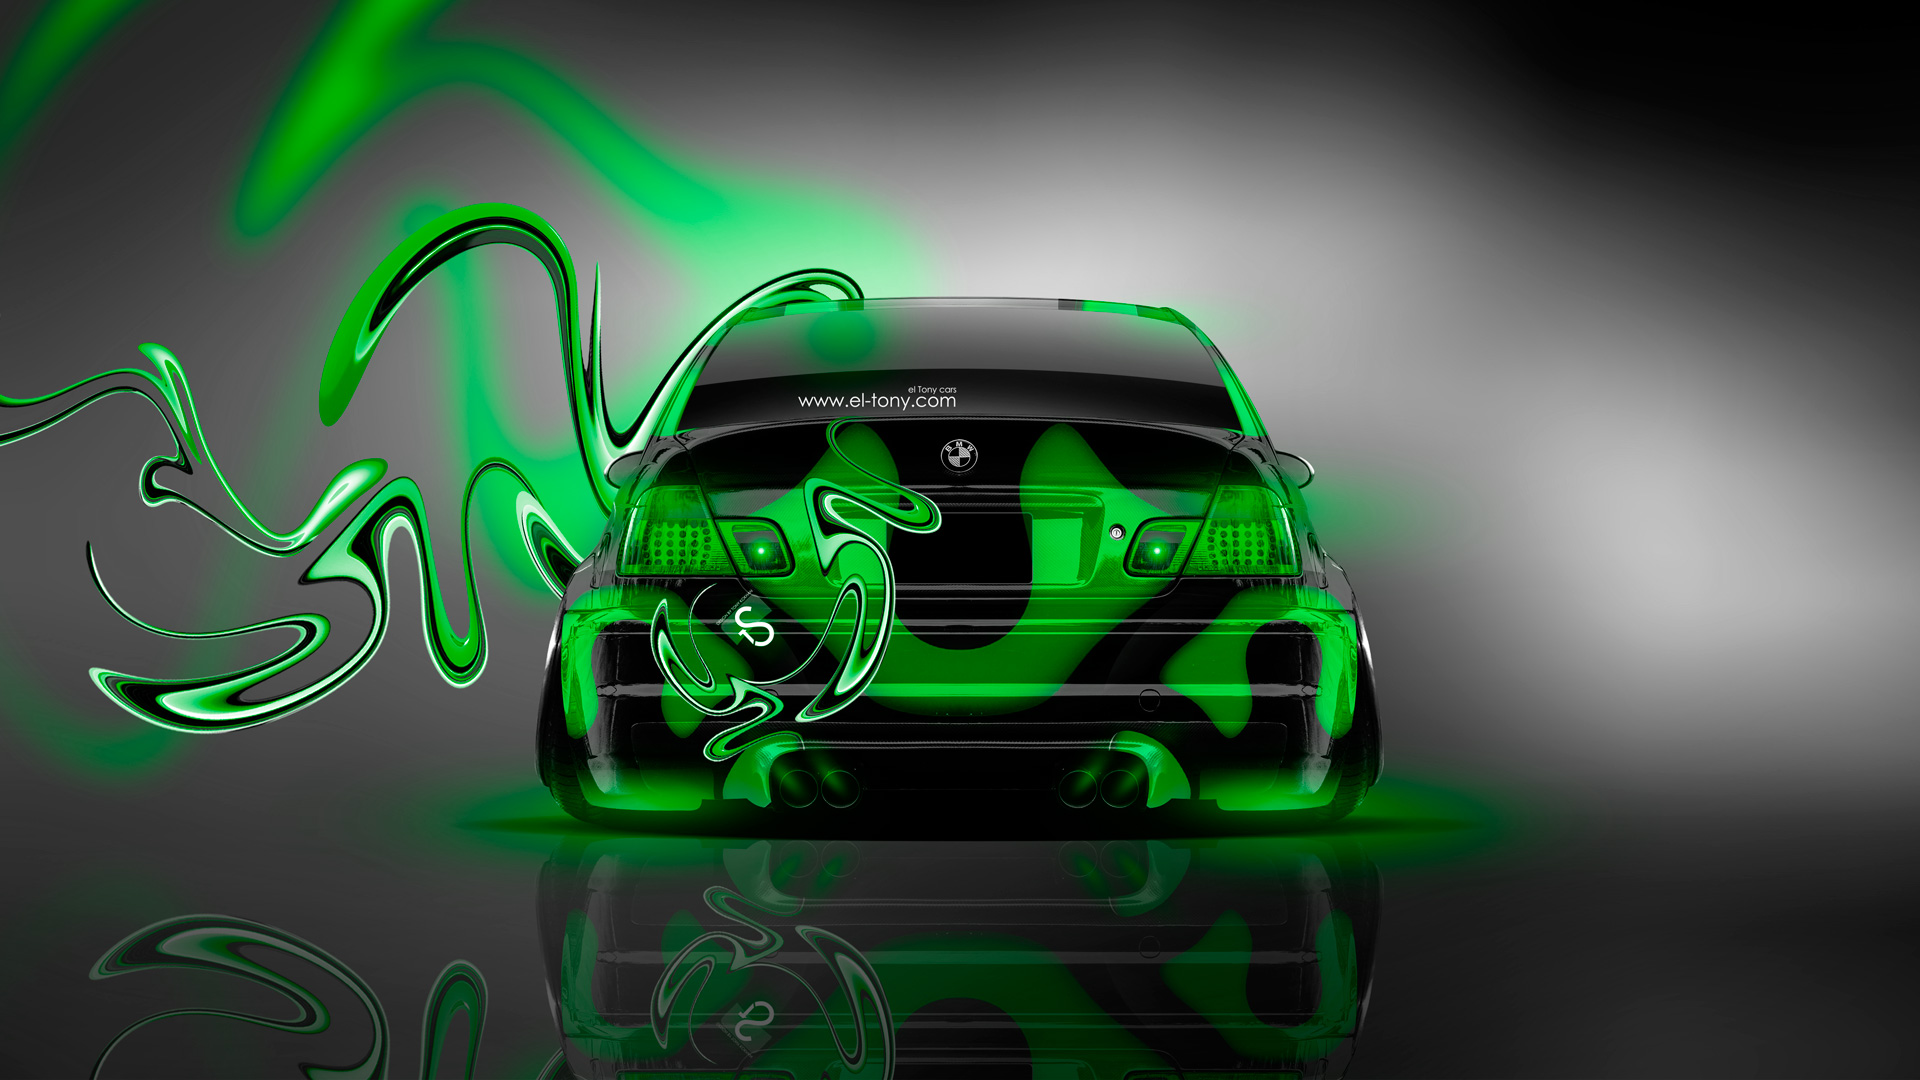 Neon Car Wallpaper Wallpapersafari